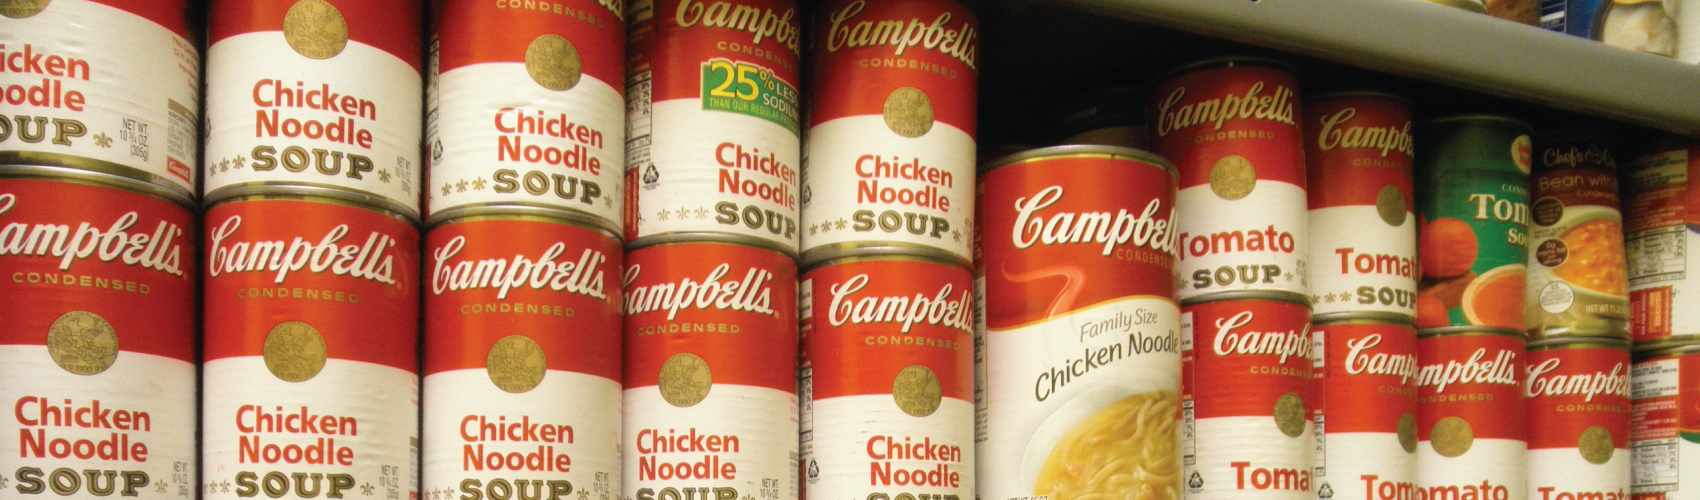 School Food Pantry Donations Needed